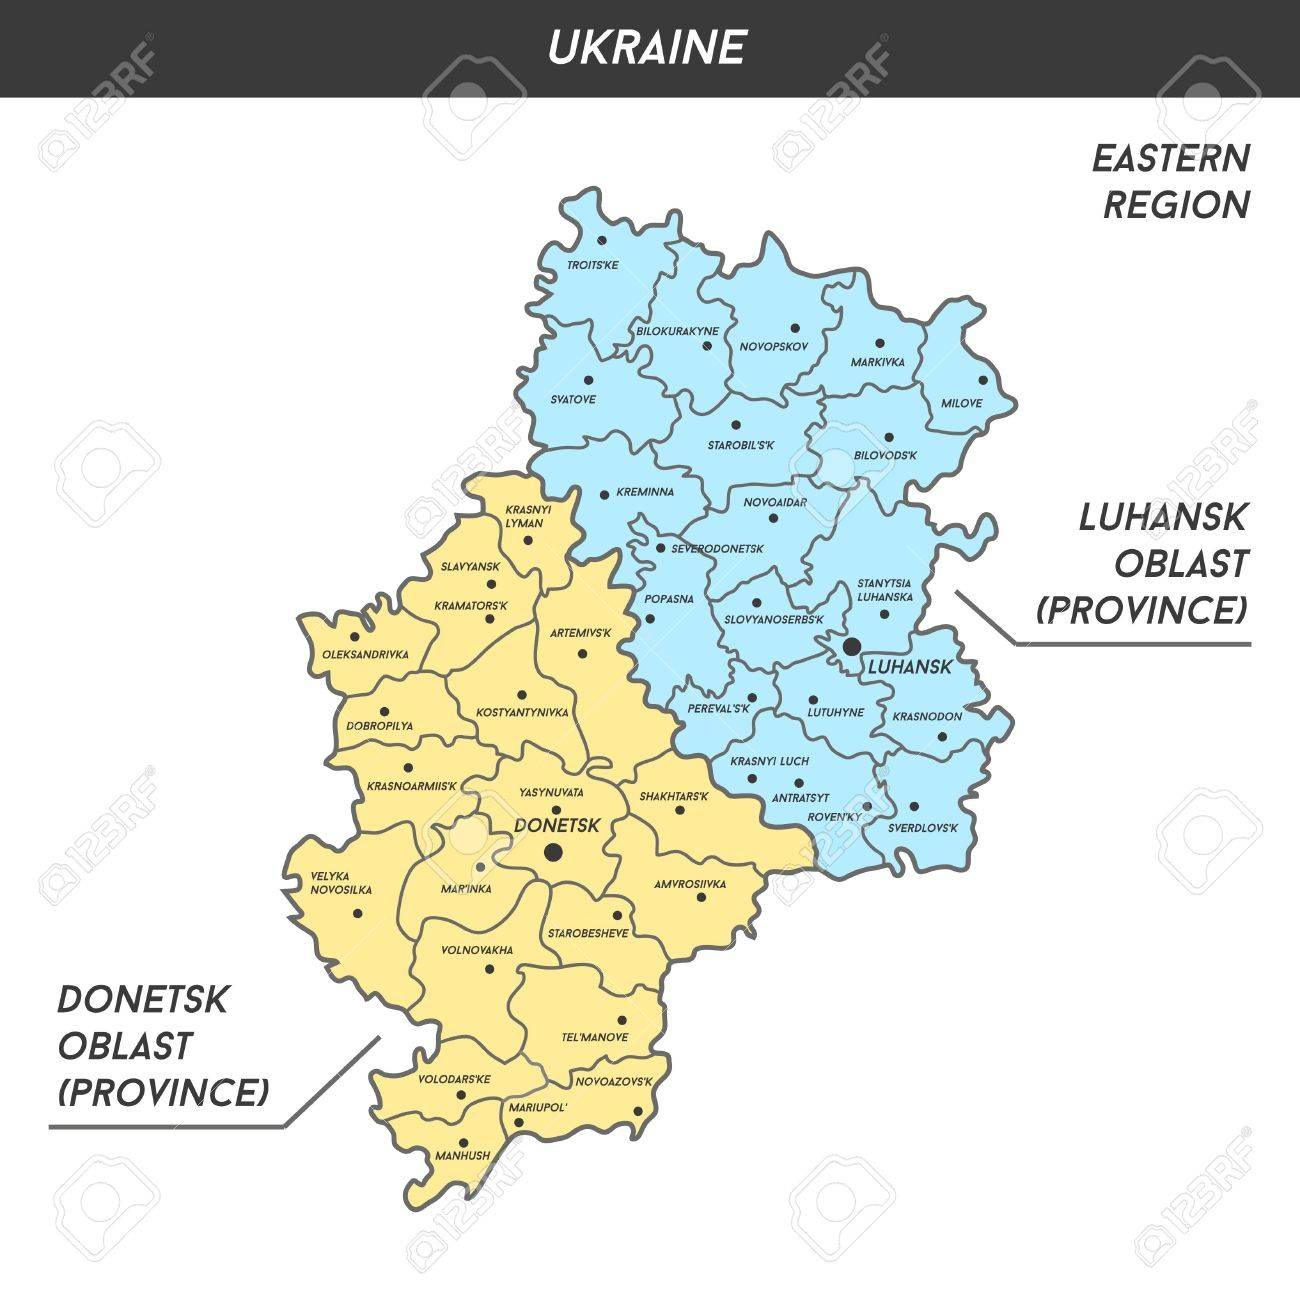 Map Of Donetsk And Luhansk Oblast Donbas With Major Cities